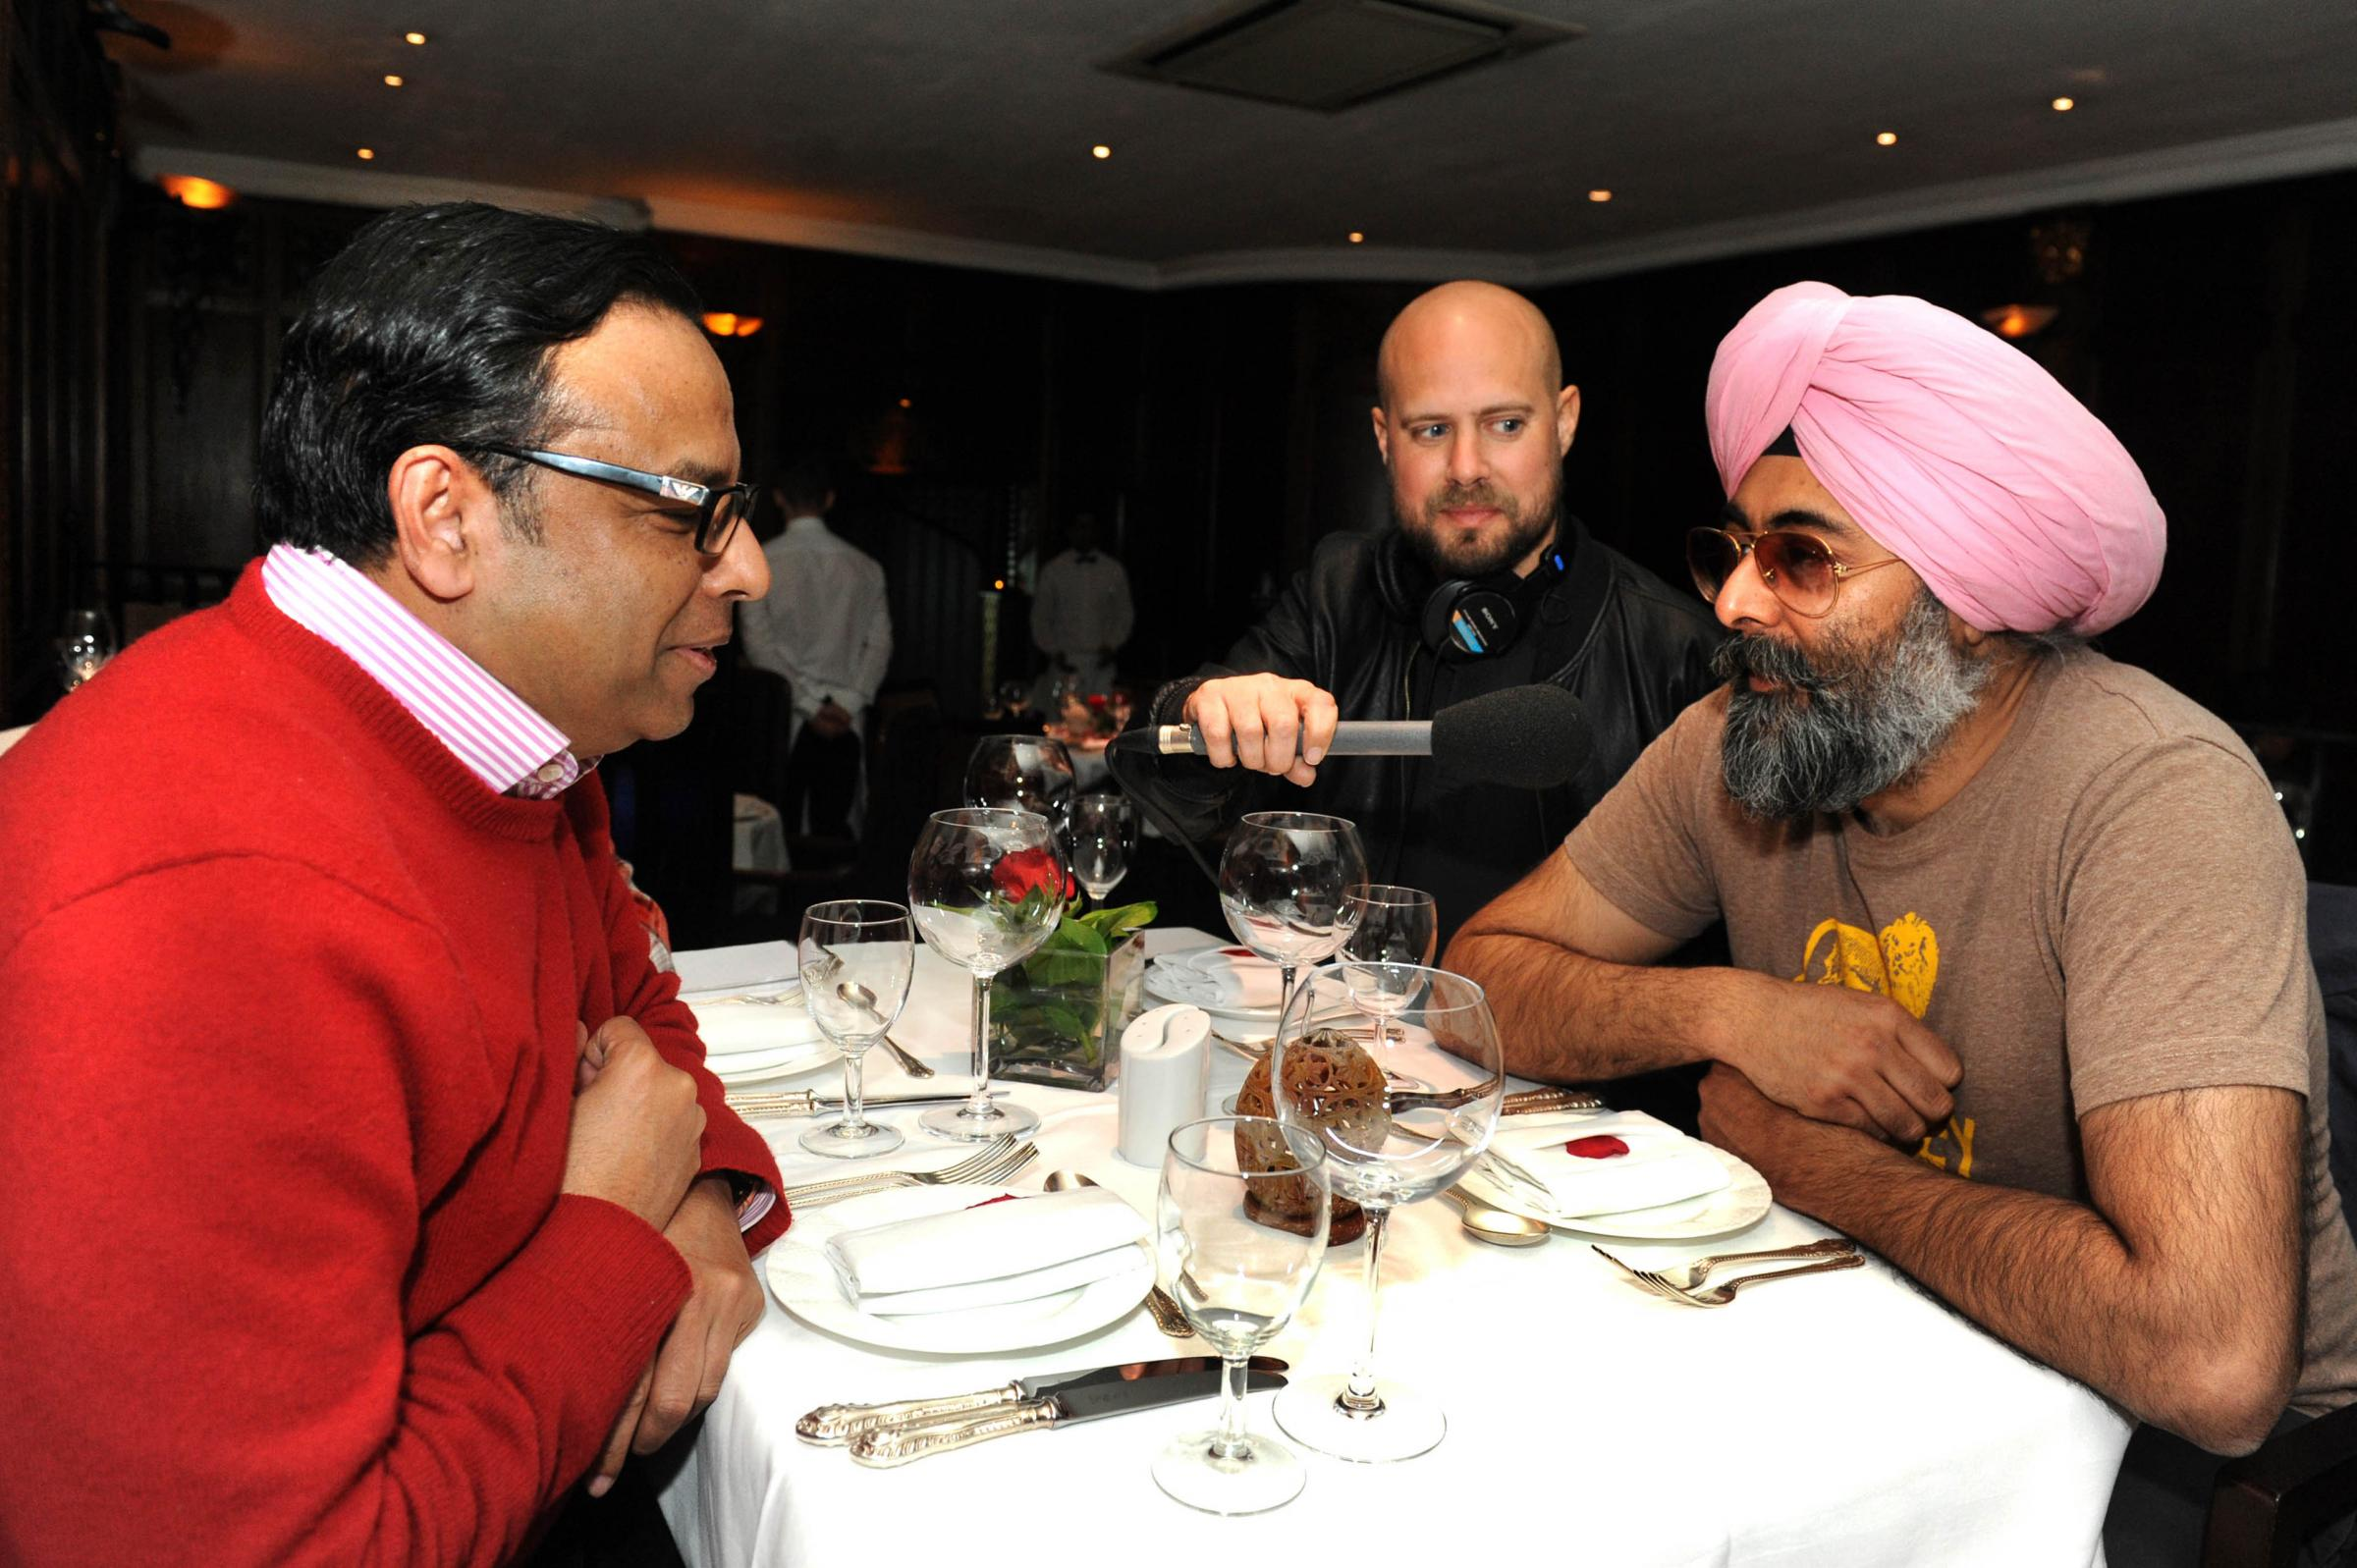 Comedian, journalist and chef Hardeep Singh Kohli interviews Indian restaurant owner